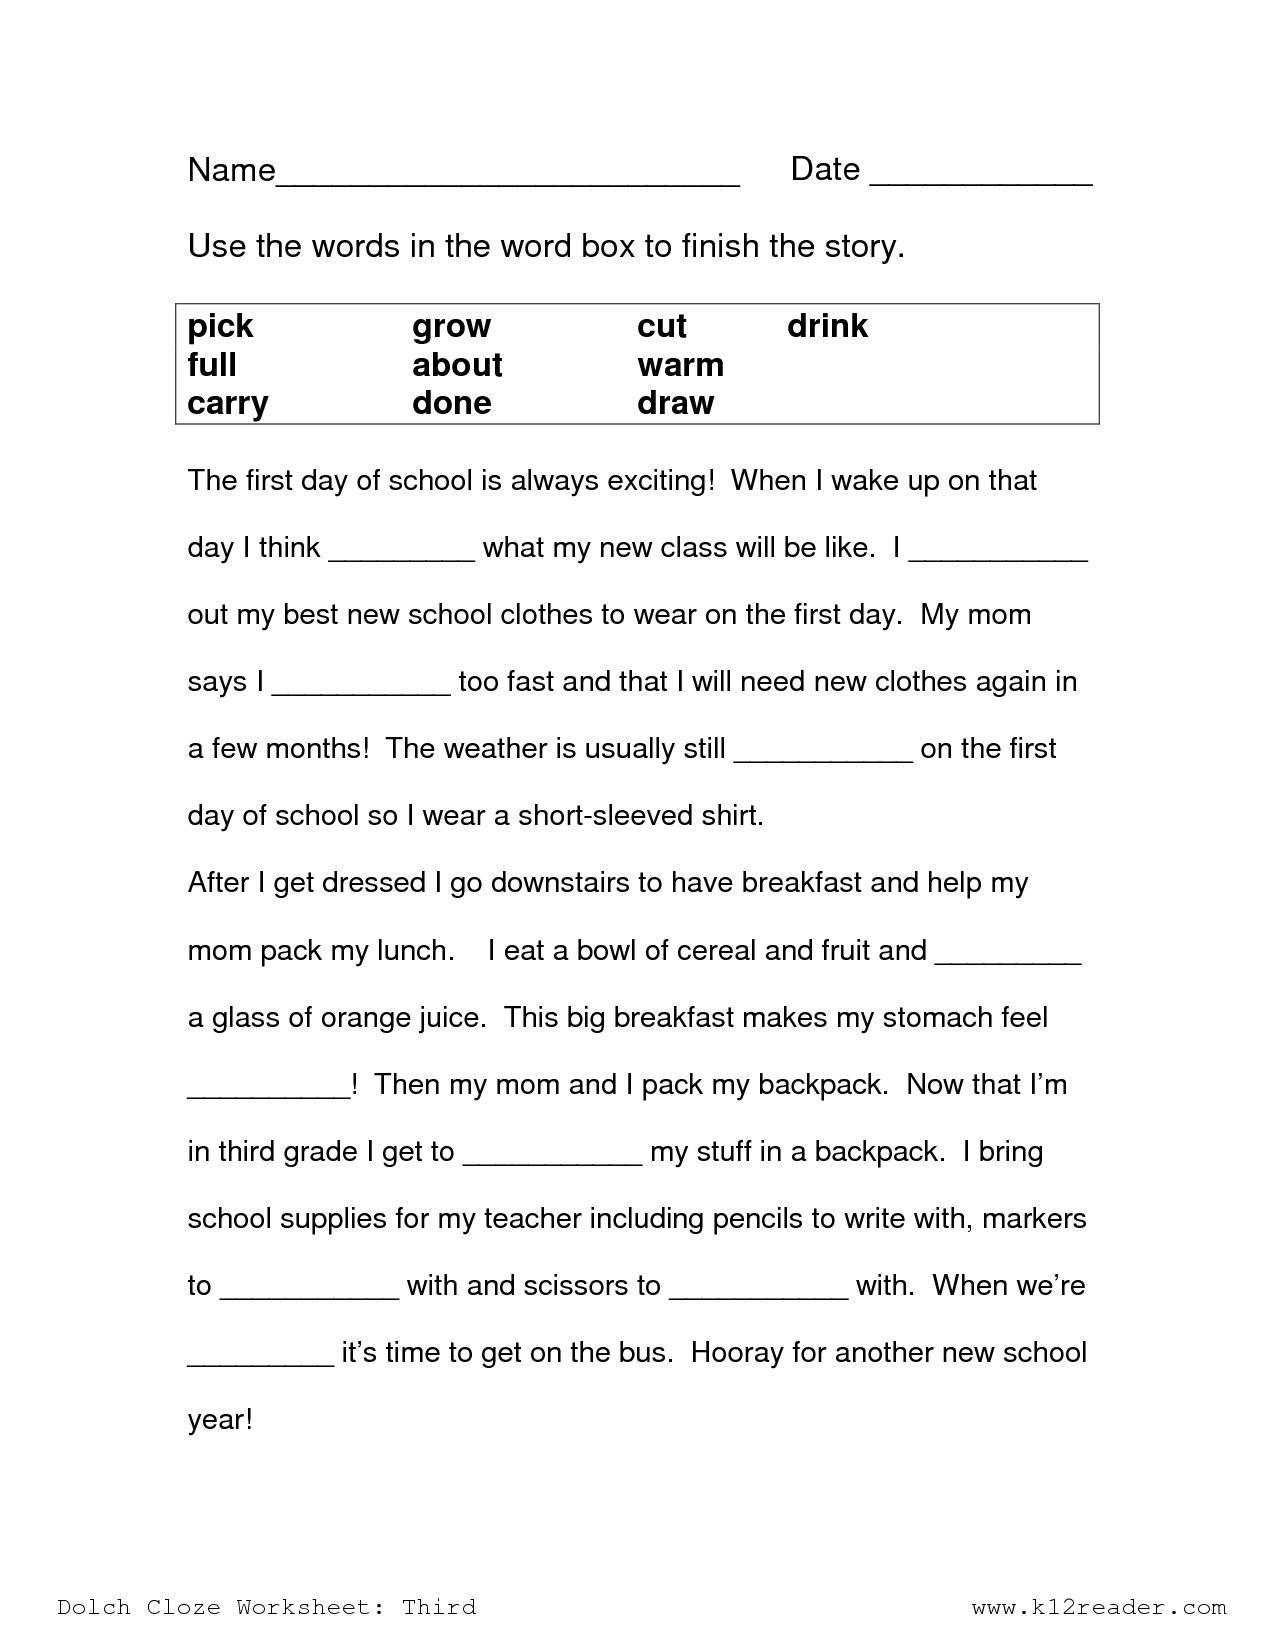 Worksheets Cloze Reading Worksheets cloze passages for 3rd grade context clues school district and grade